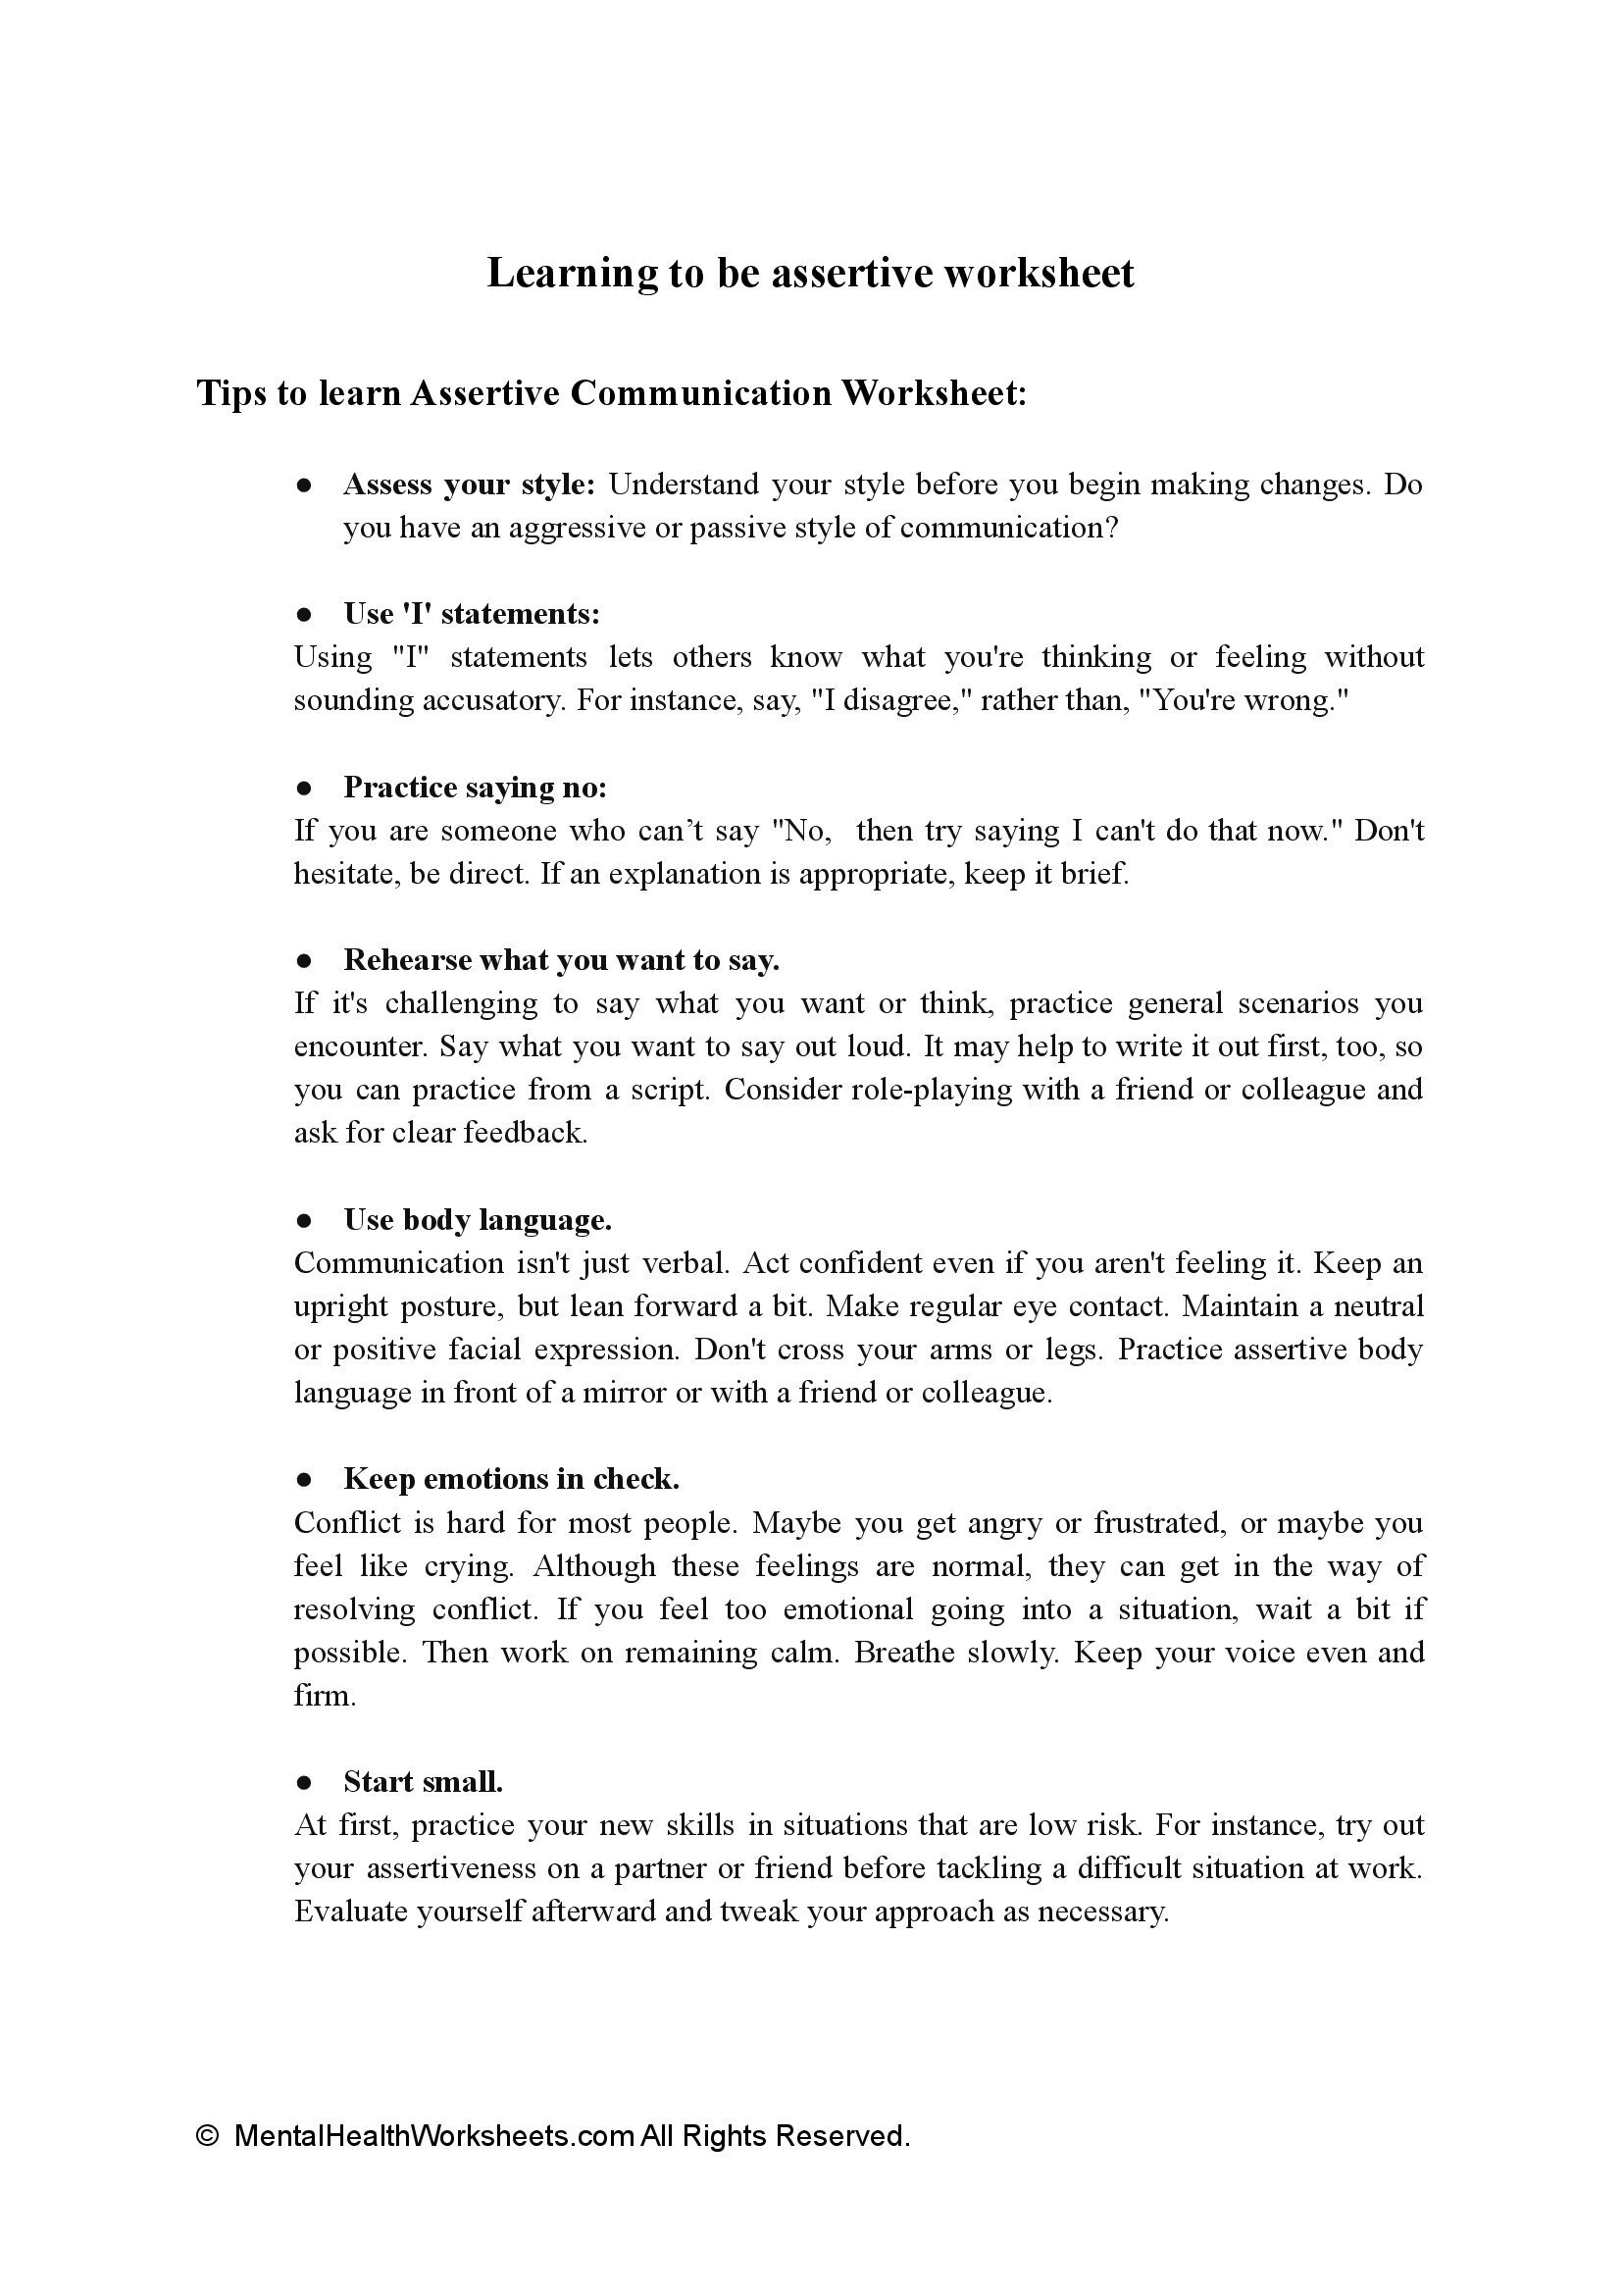 Learning to be assertive worksheet